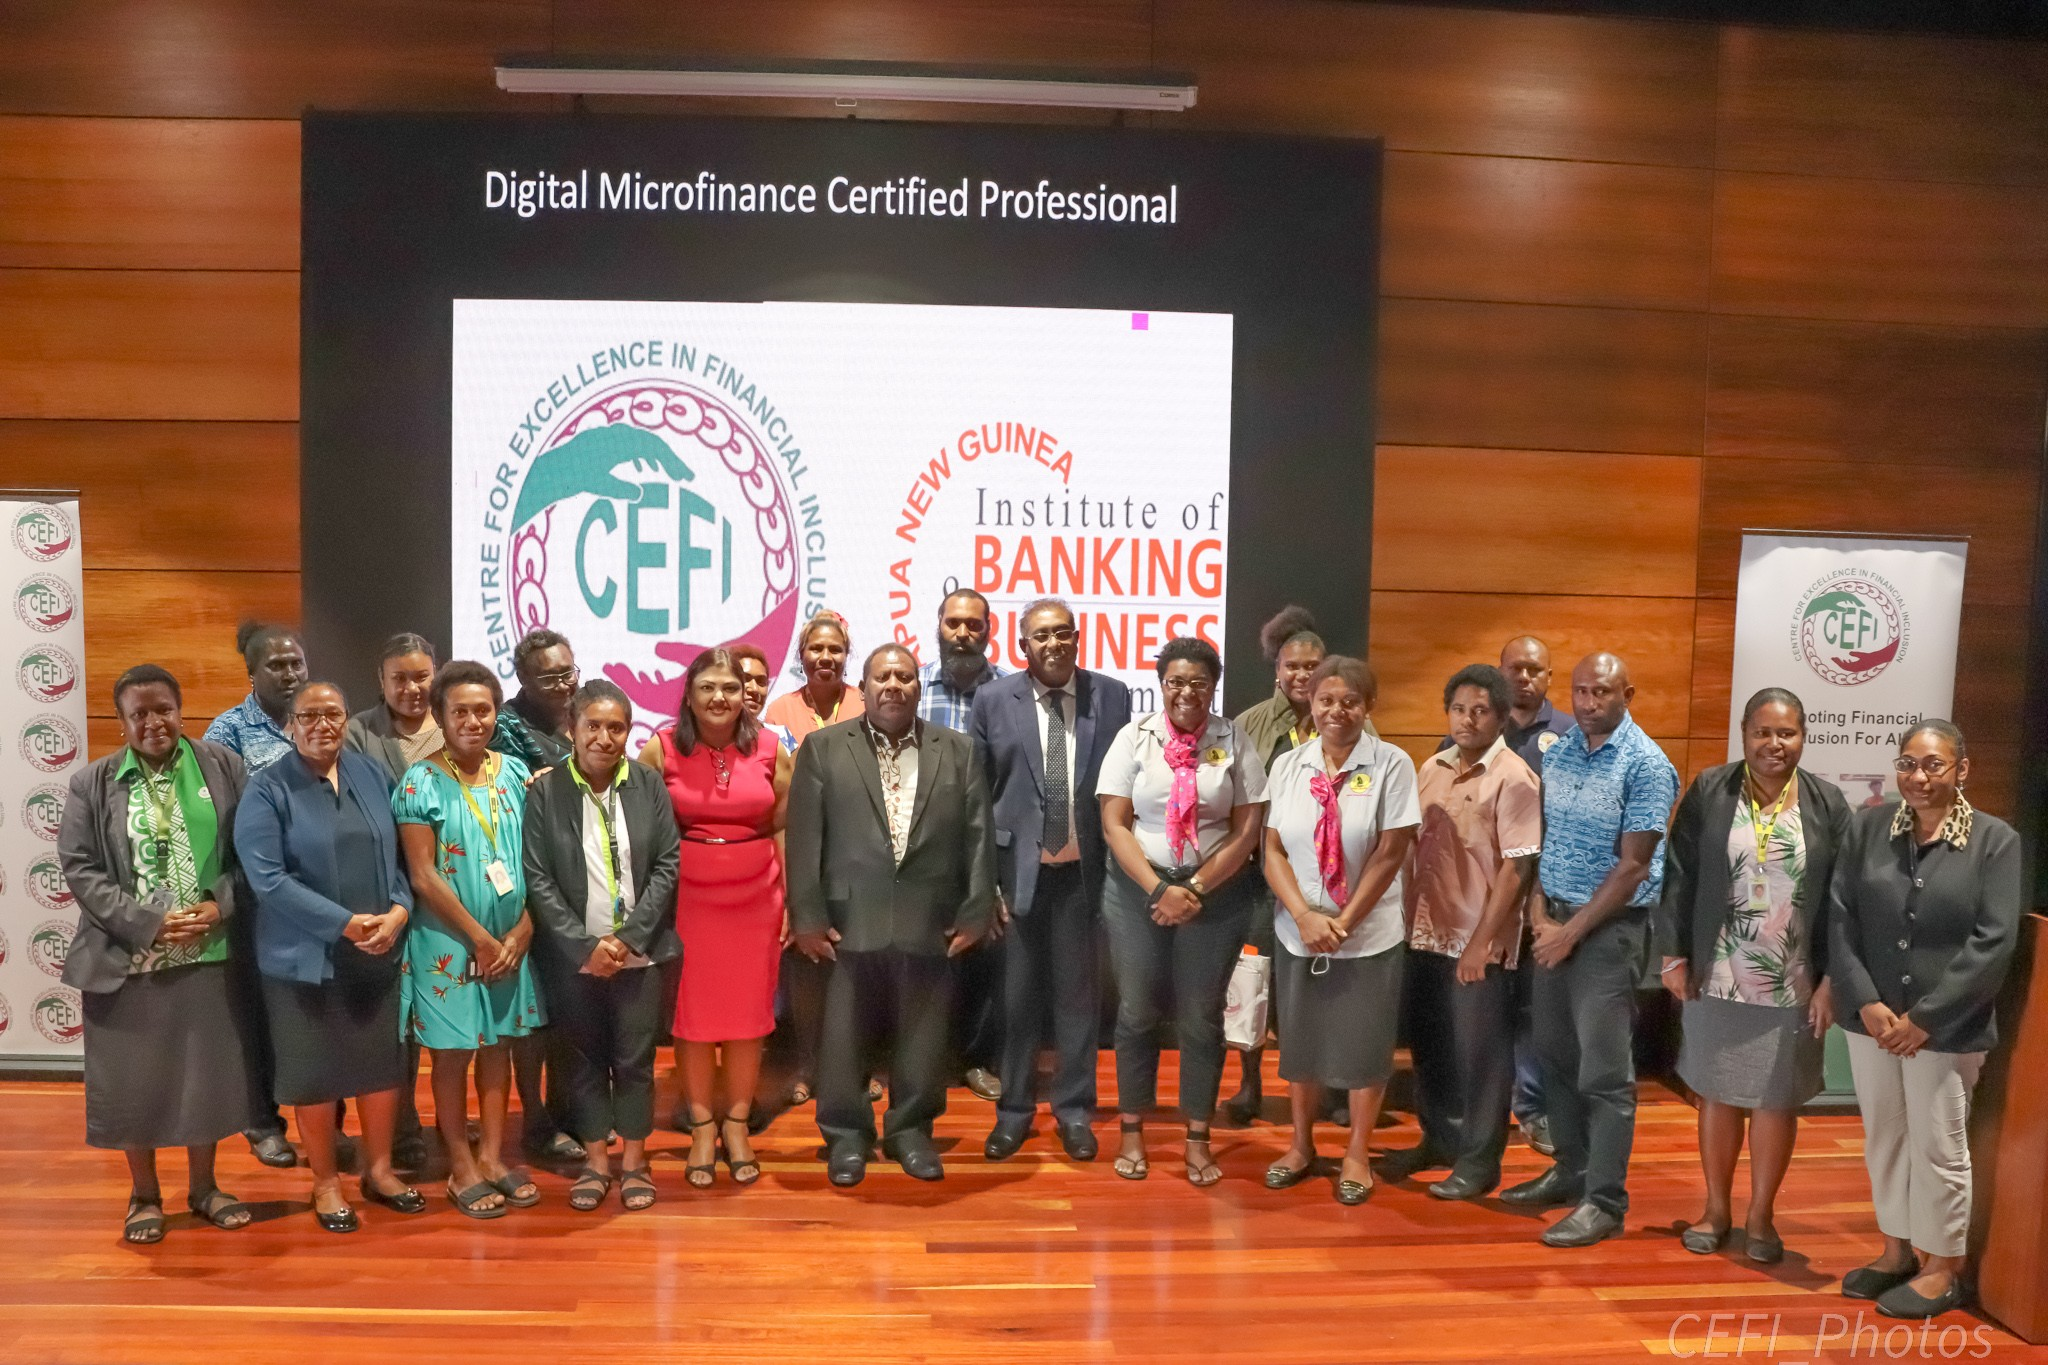 The 23 course participants with Assistant Governor Bank of PNG Ellison Pidik (standing 5th-front row), CEFI Executive Director Saliya Ranasinghe (standing 6th front row) and IBBM Dean, Dr Sweta Sud (4th front row).